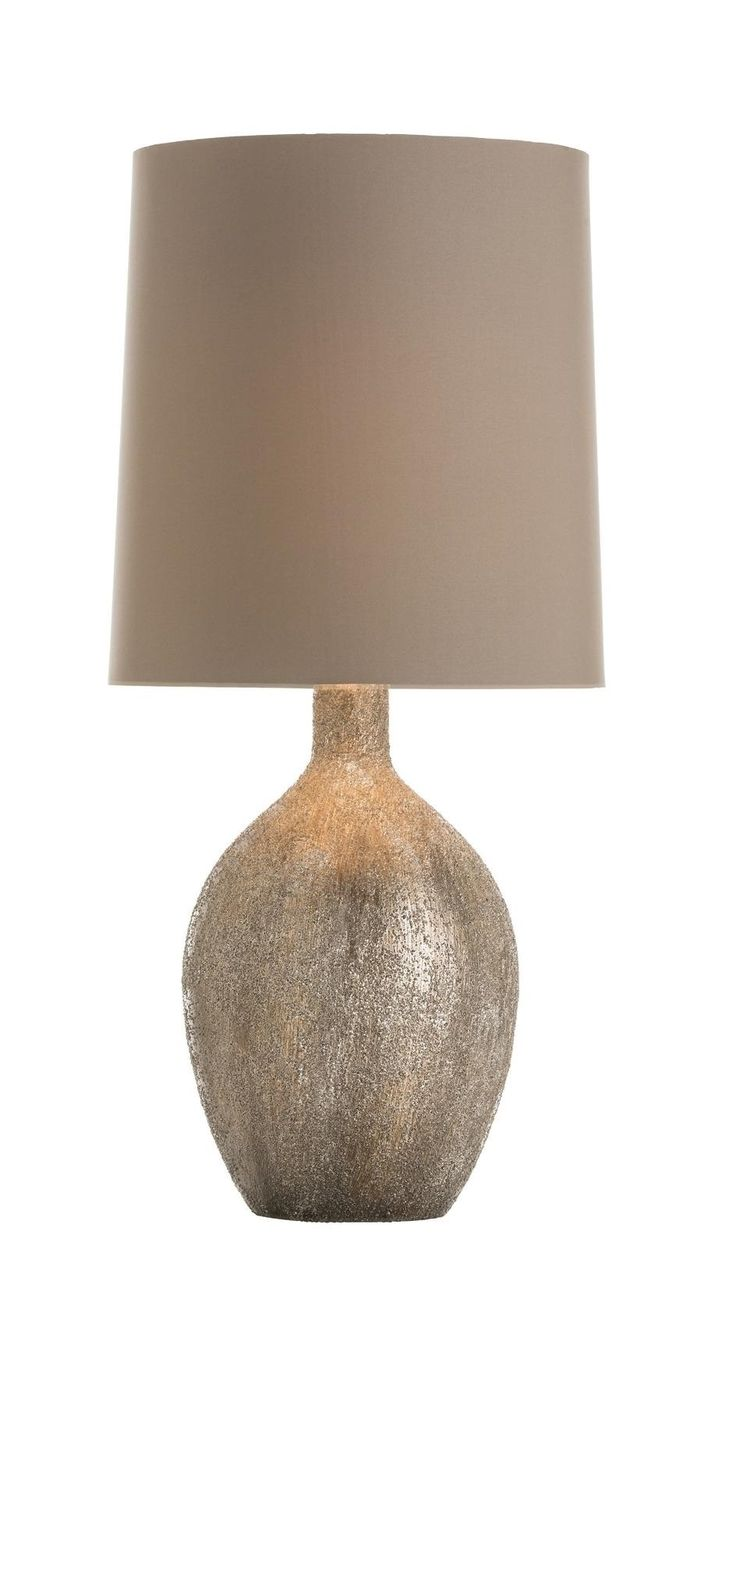 InStyle-Decor.com Taupe Table Lamps, Modern Taupe Table Lamps, Contemporary Taupe Table Lamps, Living Room Table Lamps, Dining Room Table Lamps, Bedroom Table Lamps, Bedside Table Lamps, Nightstand Table Lamps. Colorful Inspiring Designs, Check Out Our On Line Store for Over 3,500 Luxury Designer Furniture, Lighting, Decor & Gift Inspirations, Nationwide & International Shipping From Beverly Hills California Enjoy Whats Trending in Hollywood